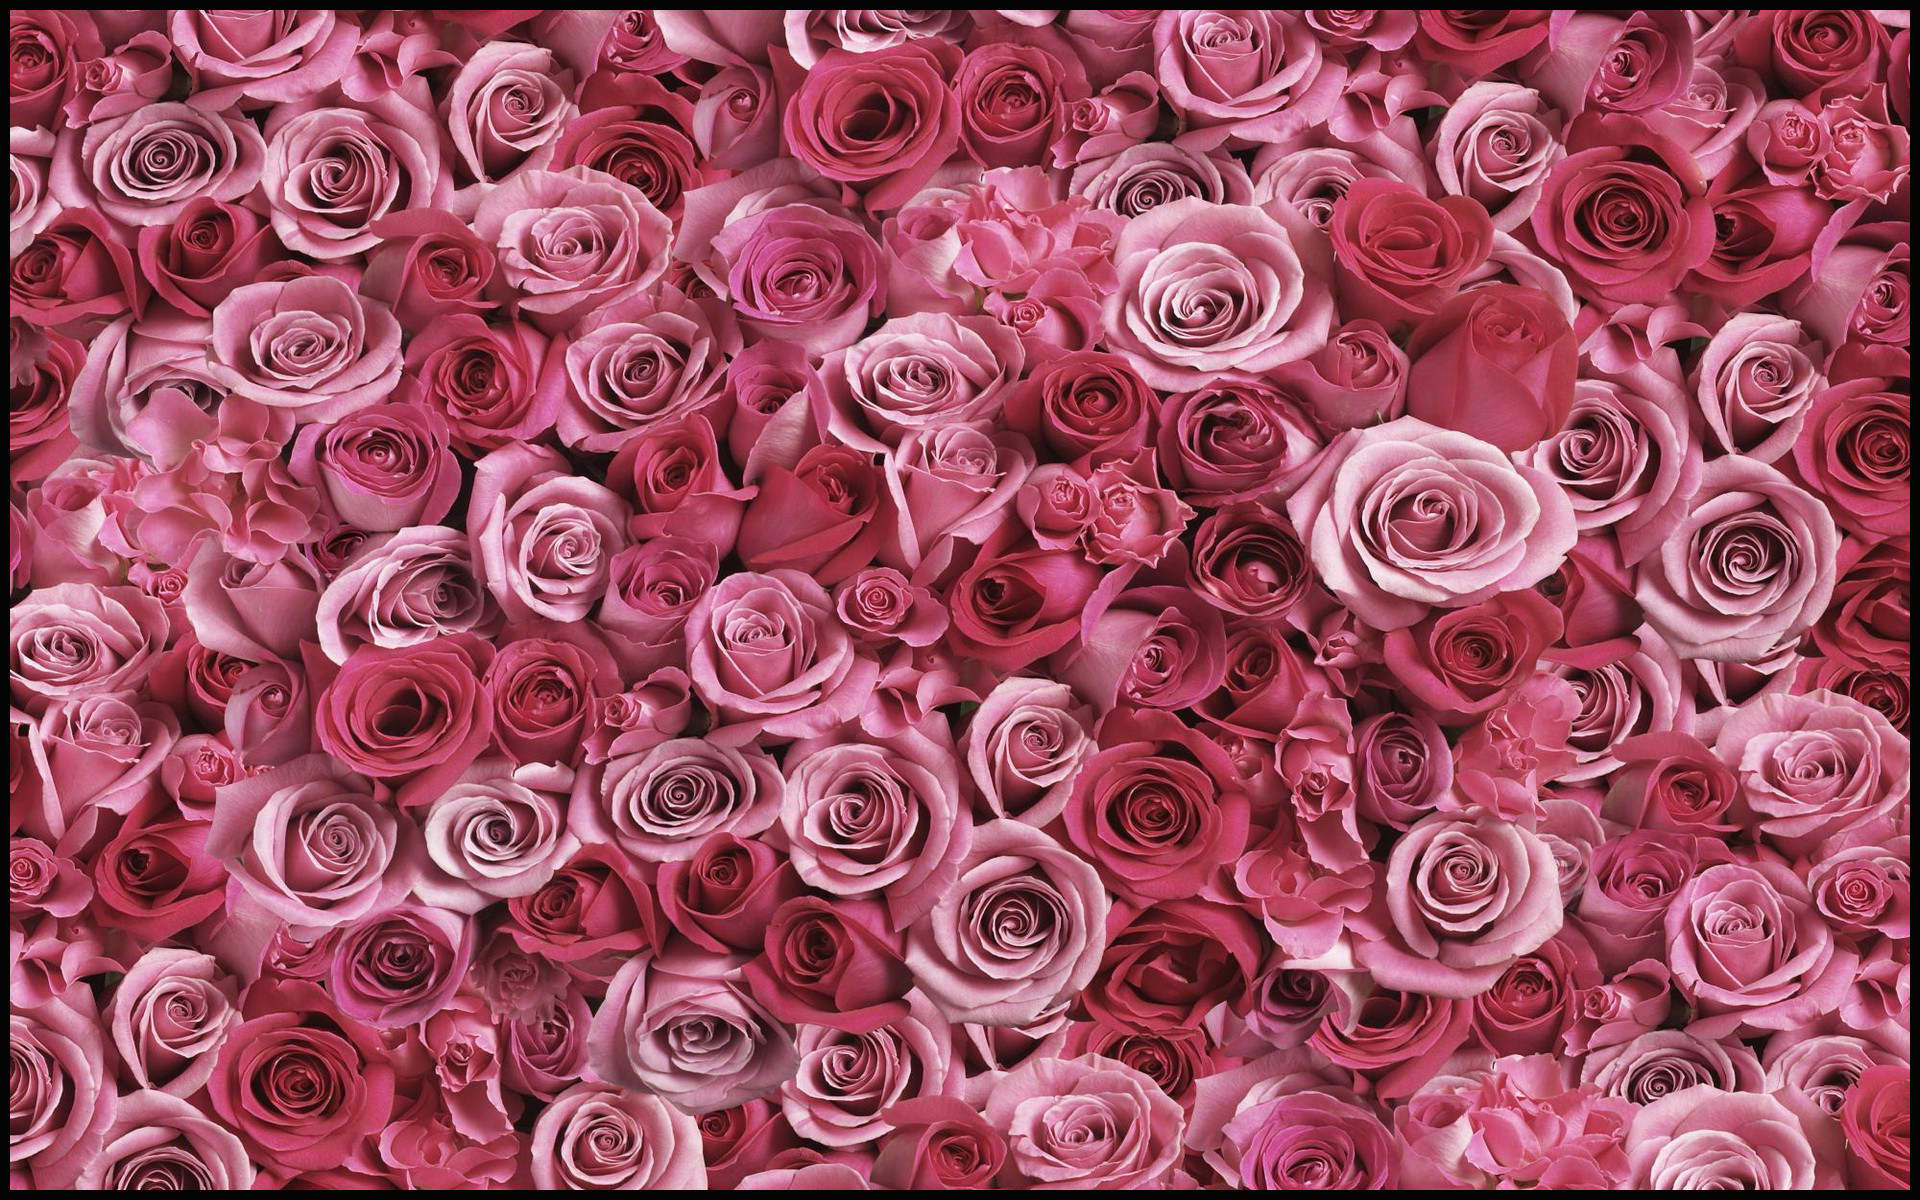 Roses Background Images HD Wallpapers Download Free Images Wallpaper [1000image.com]